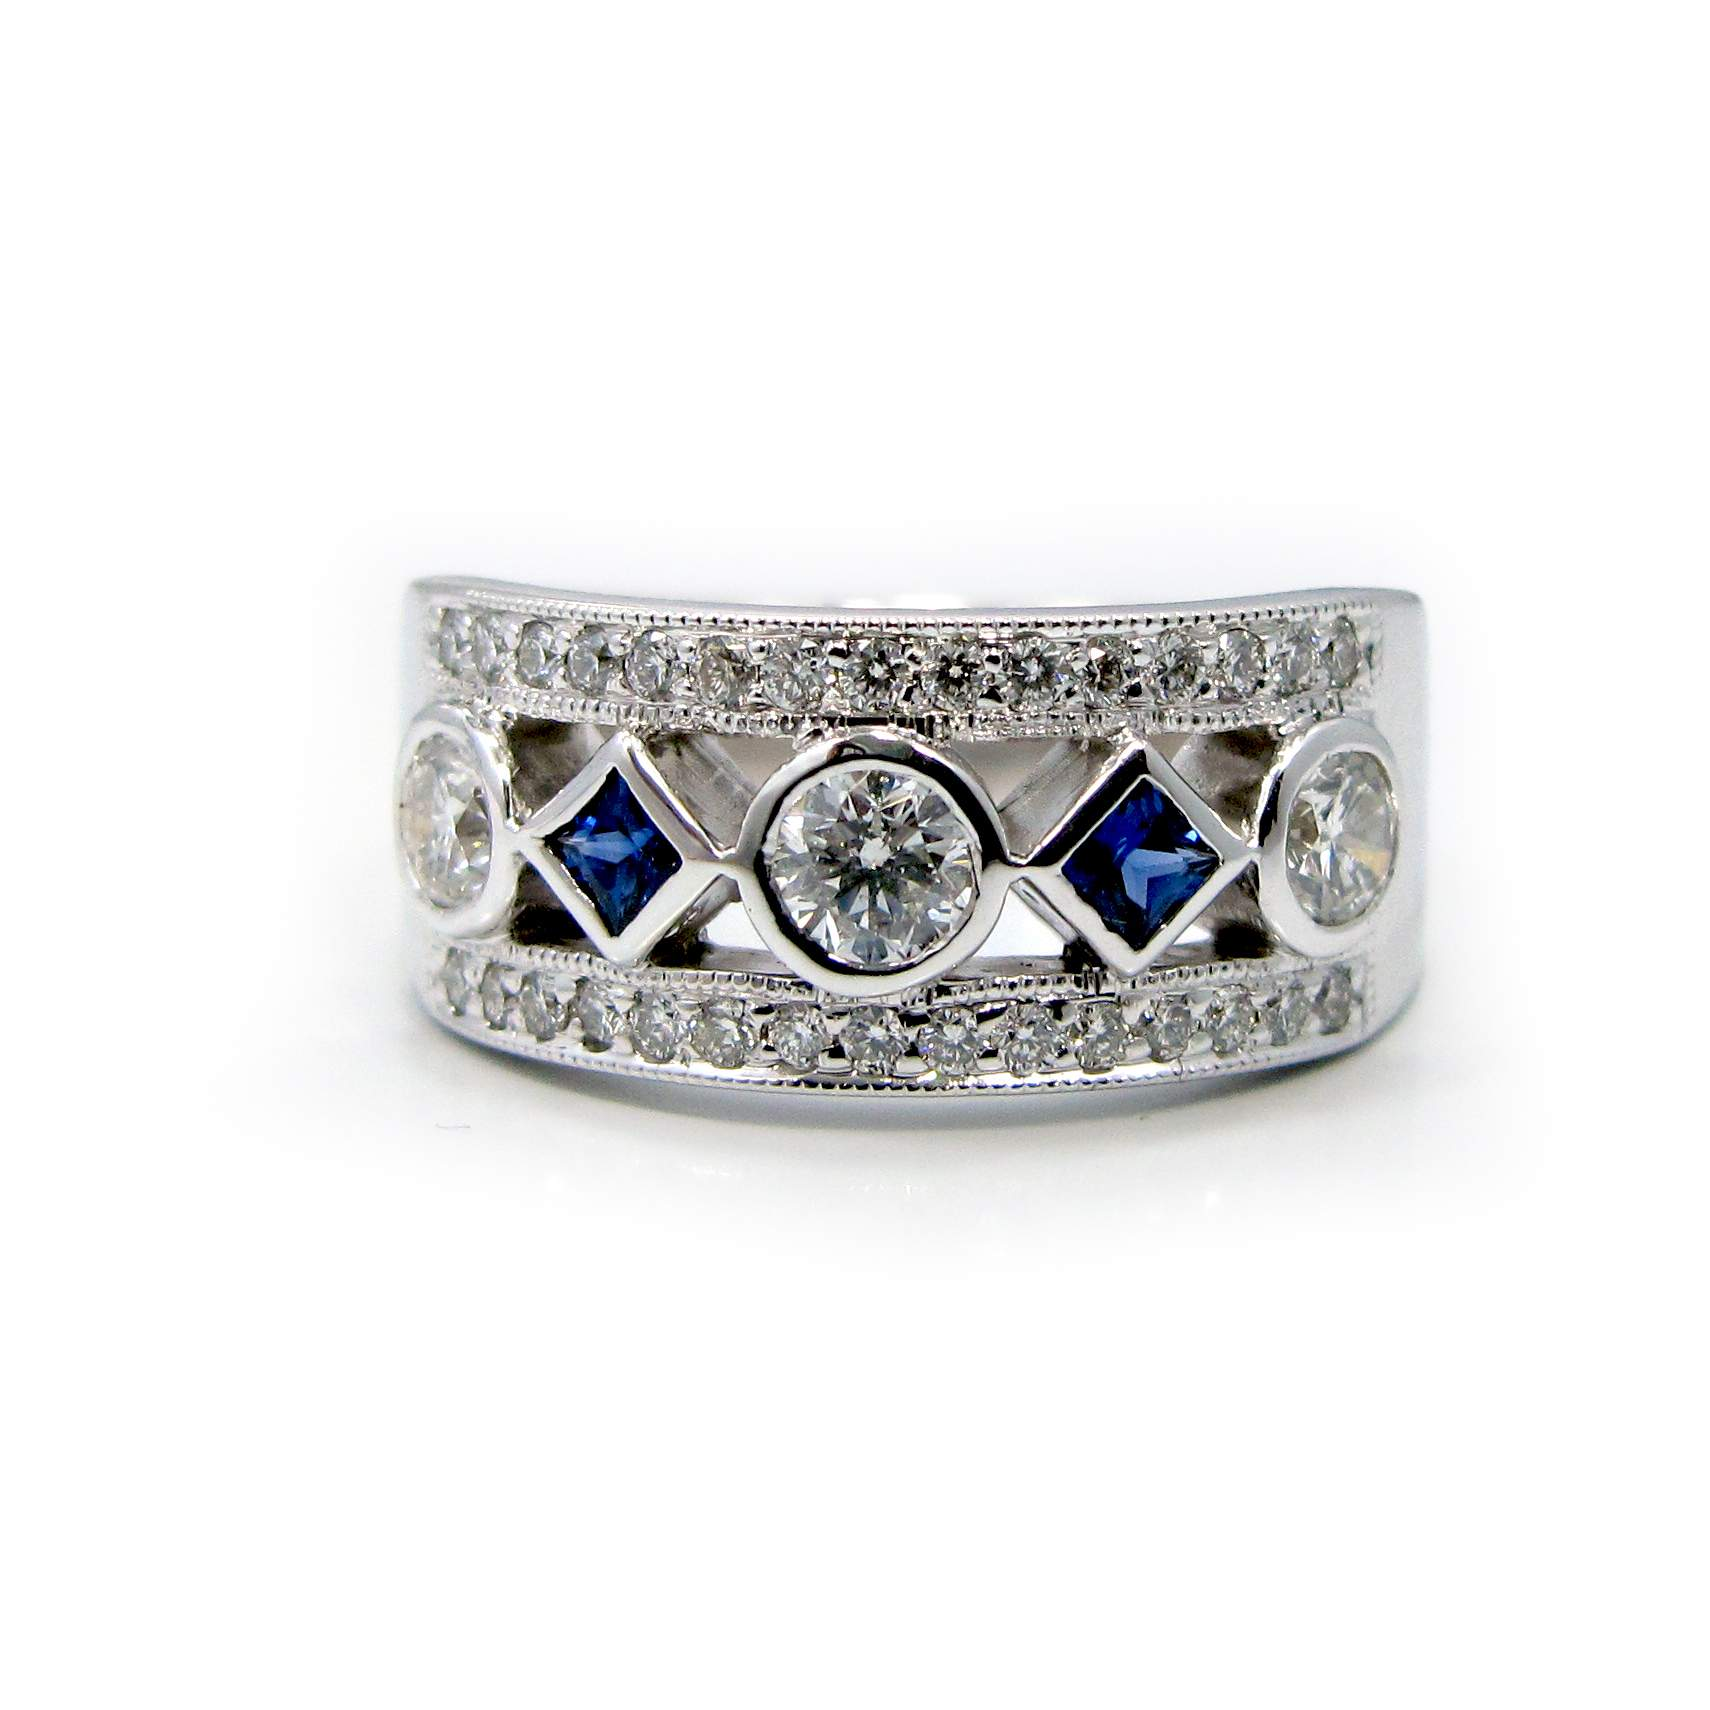 5 and princess cut blue sapphire ring